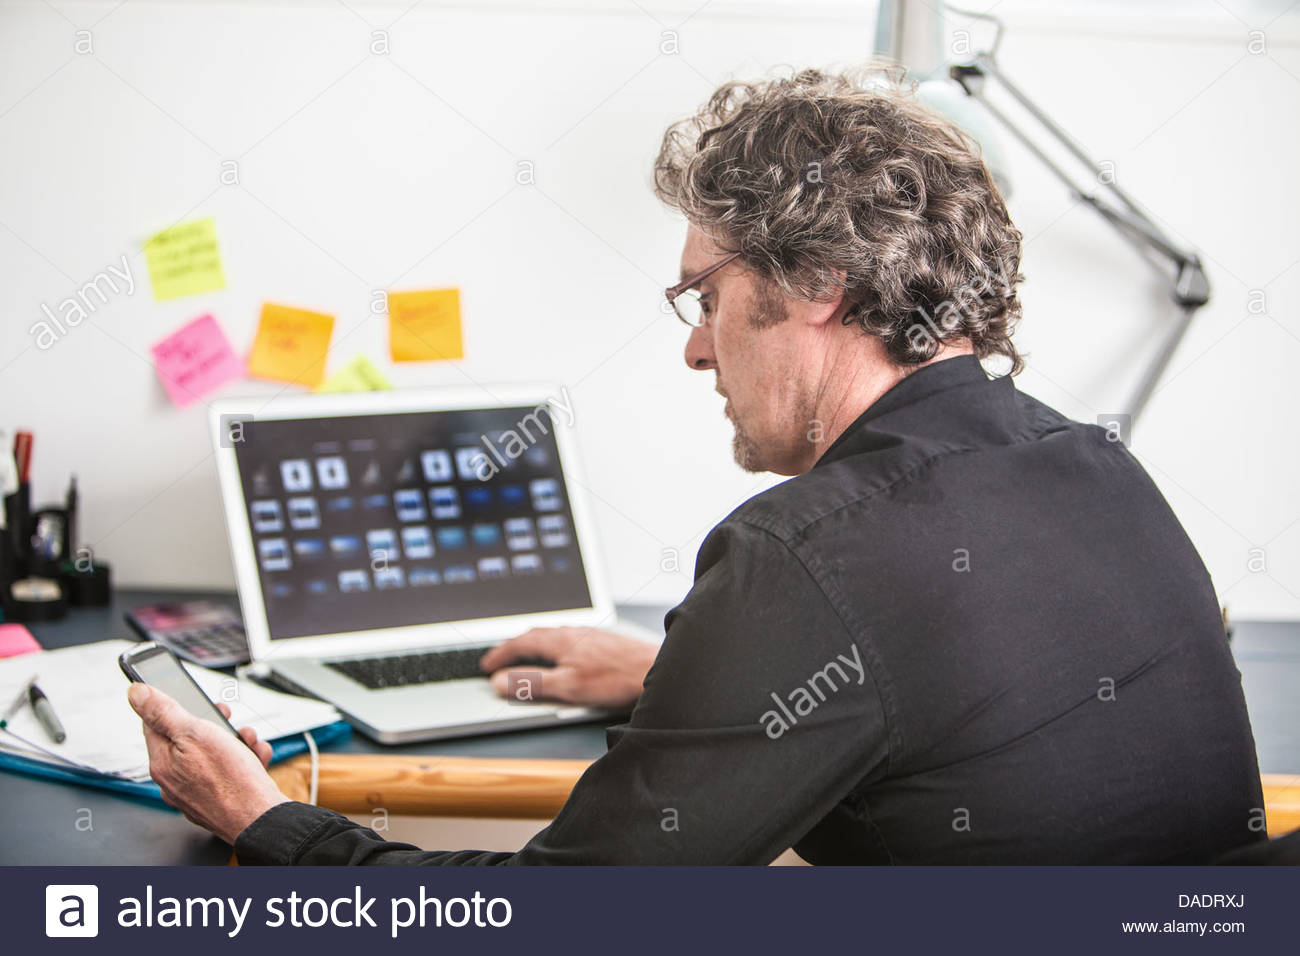 Man looking at smartphone screen in his office - Stock Image